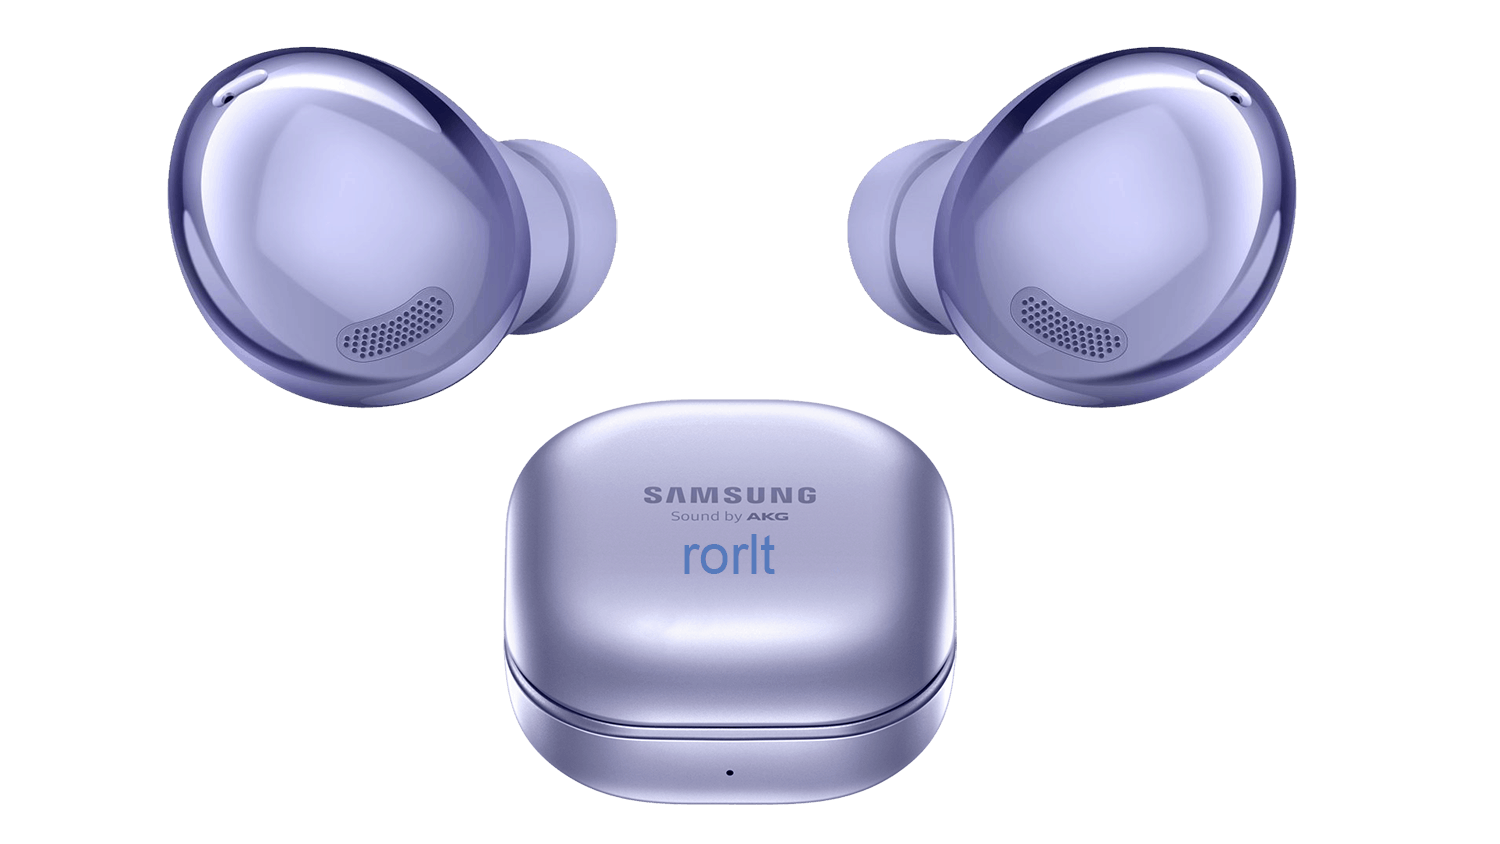 Samsung Galaxy Buds Pro leaked images reveal new design 01